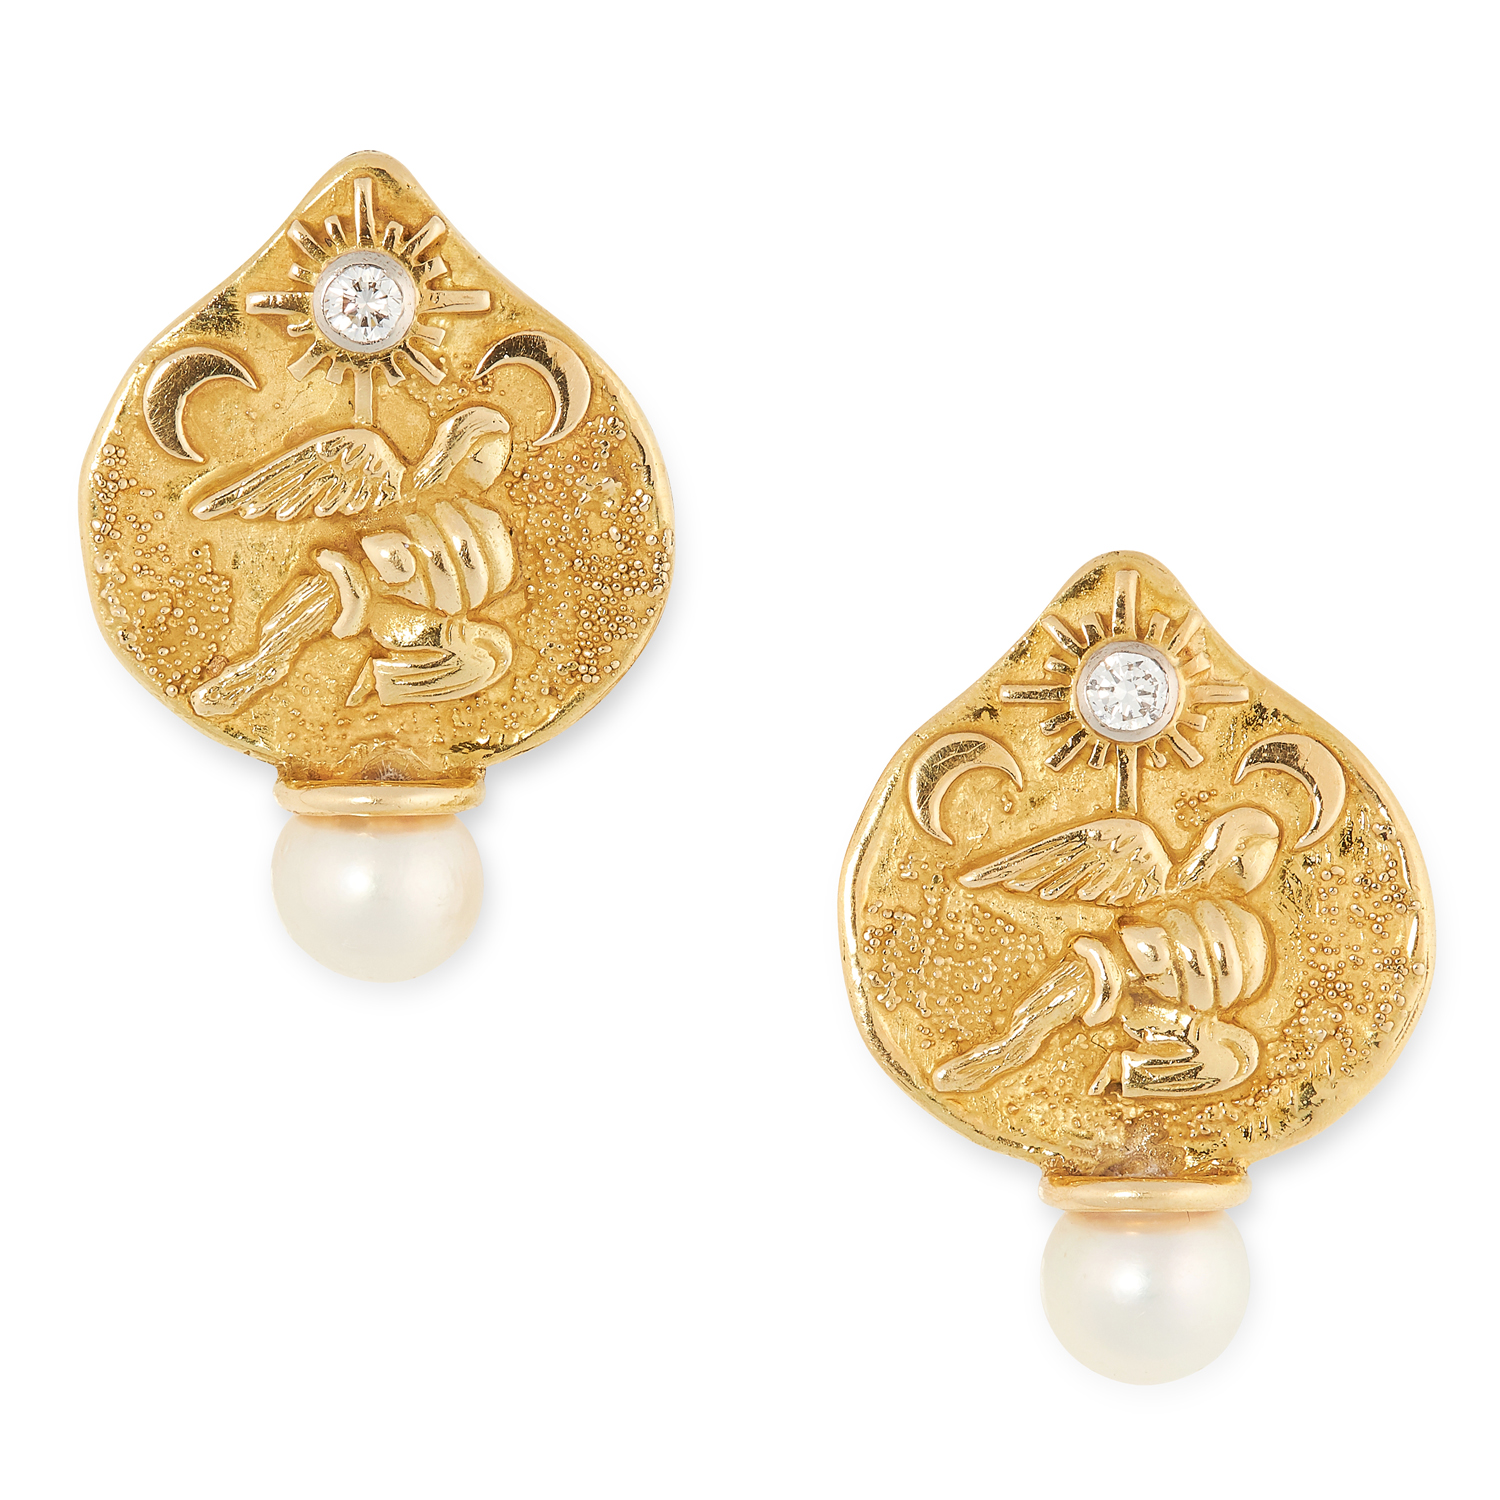 A PAIR OF PEARL AND DIAMOND EARRINGS, ELIZABETH GAGE depicting the Aquarius zodiac sign, each set